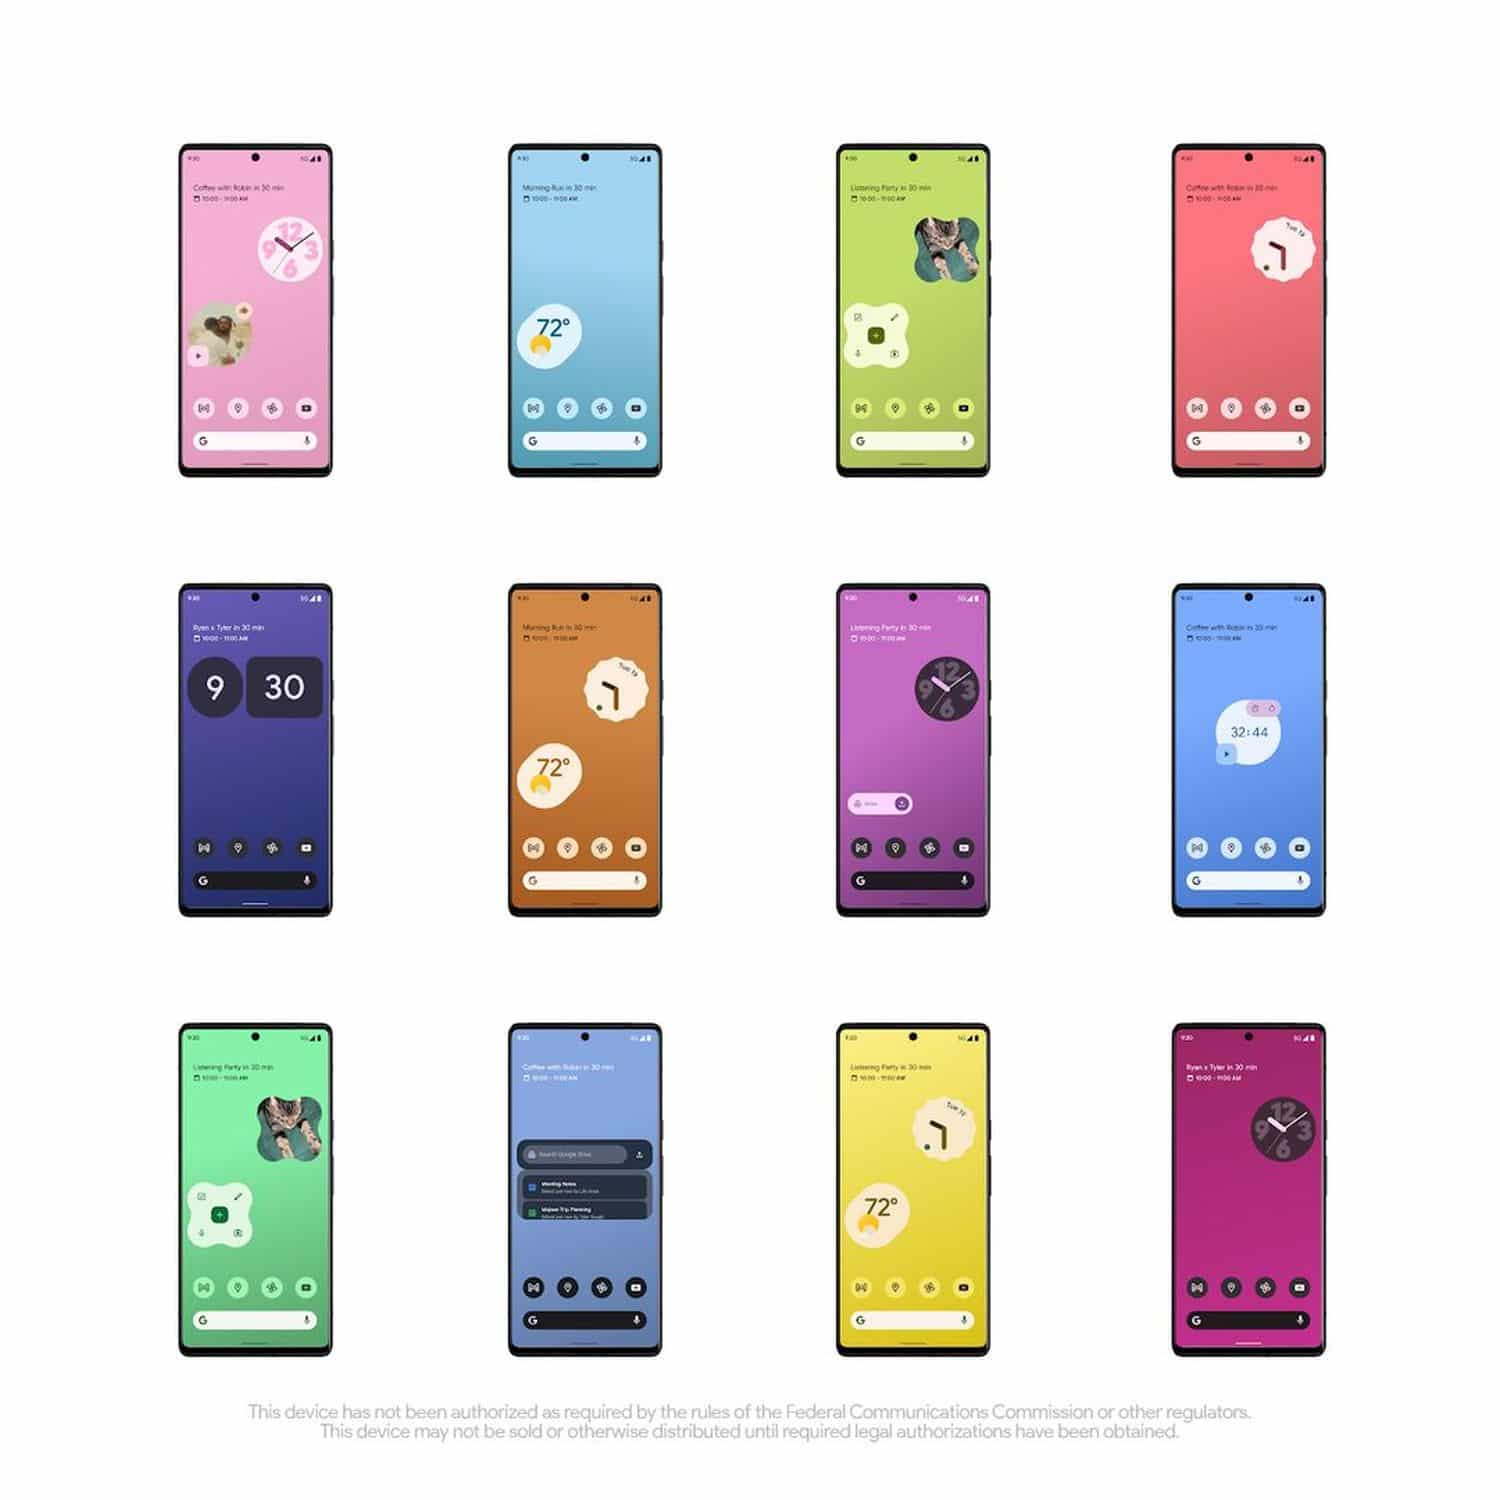 pixel 6 werbung android 12 material you